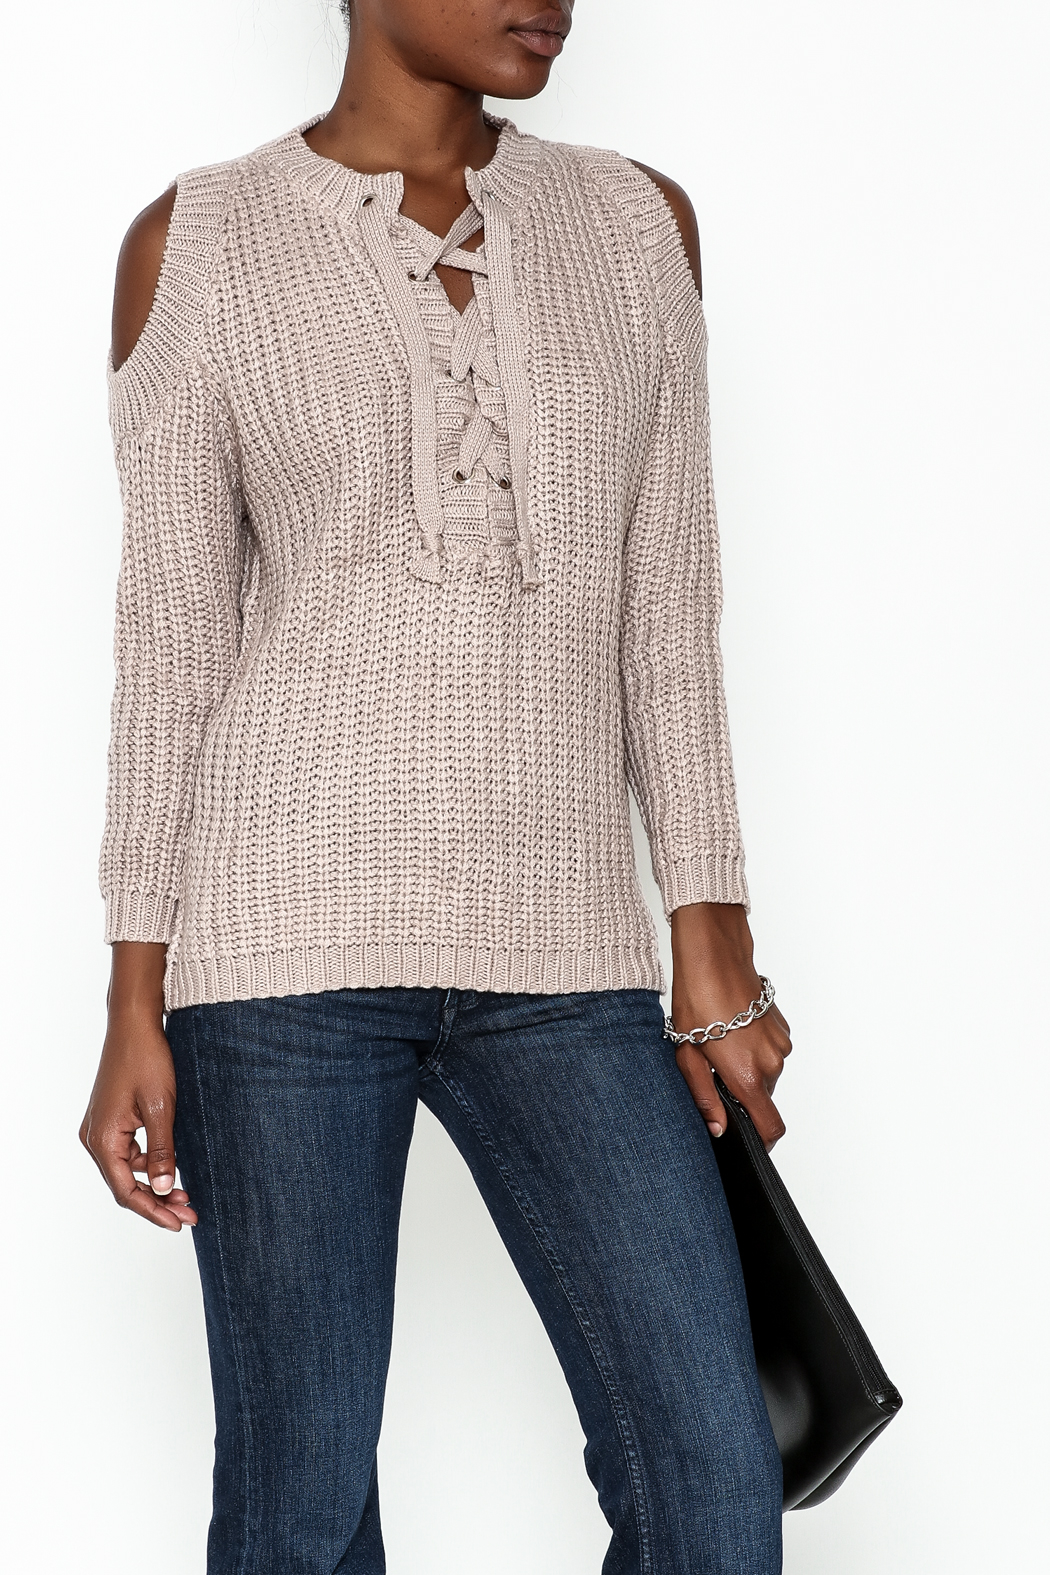 She + Sky Lace Up Sweater - Main Image